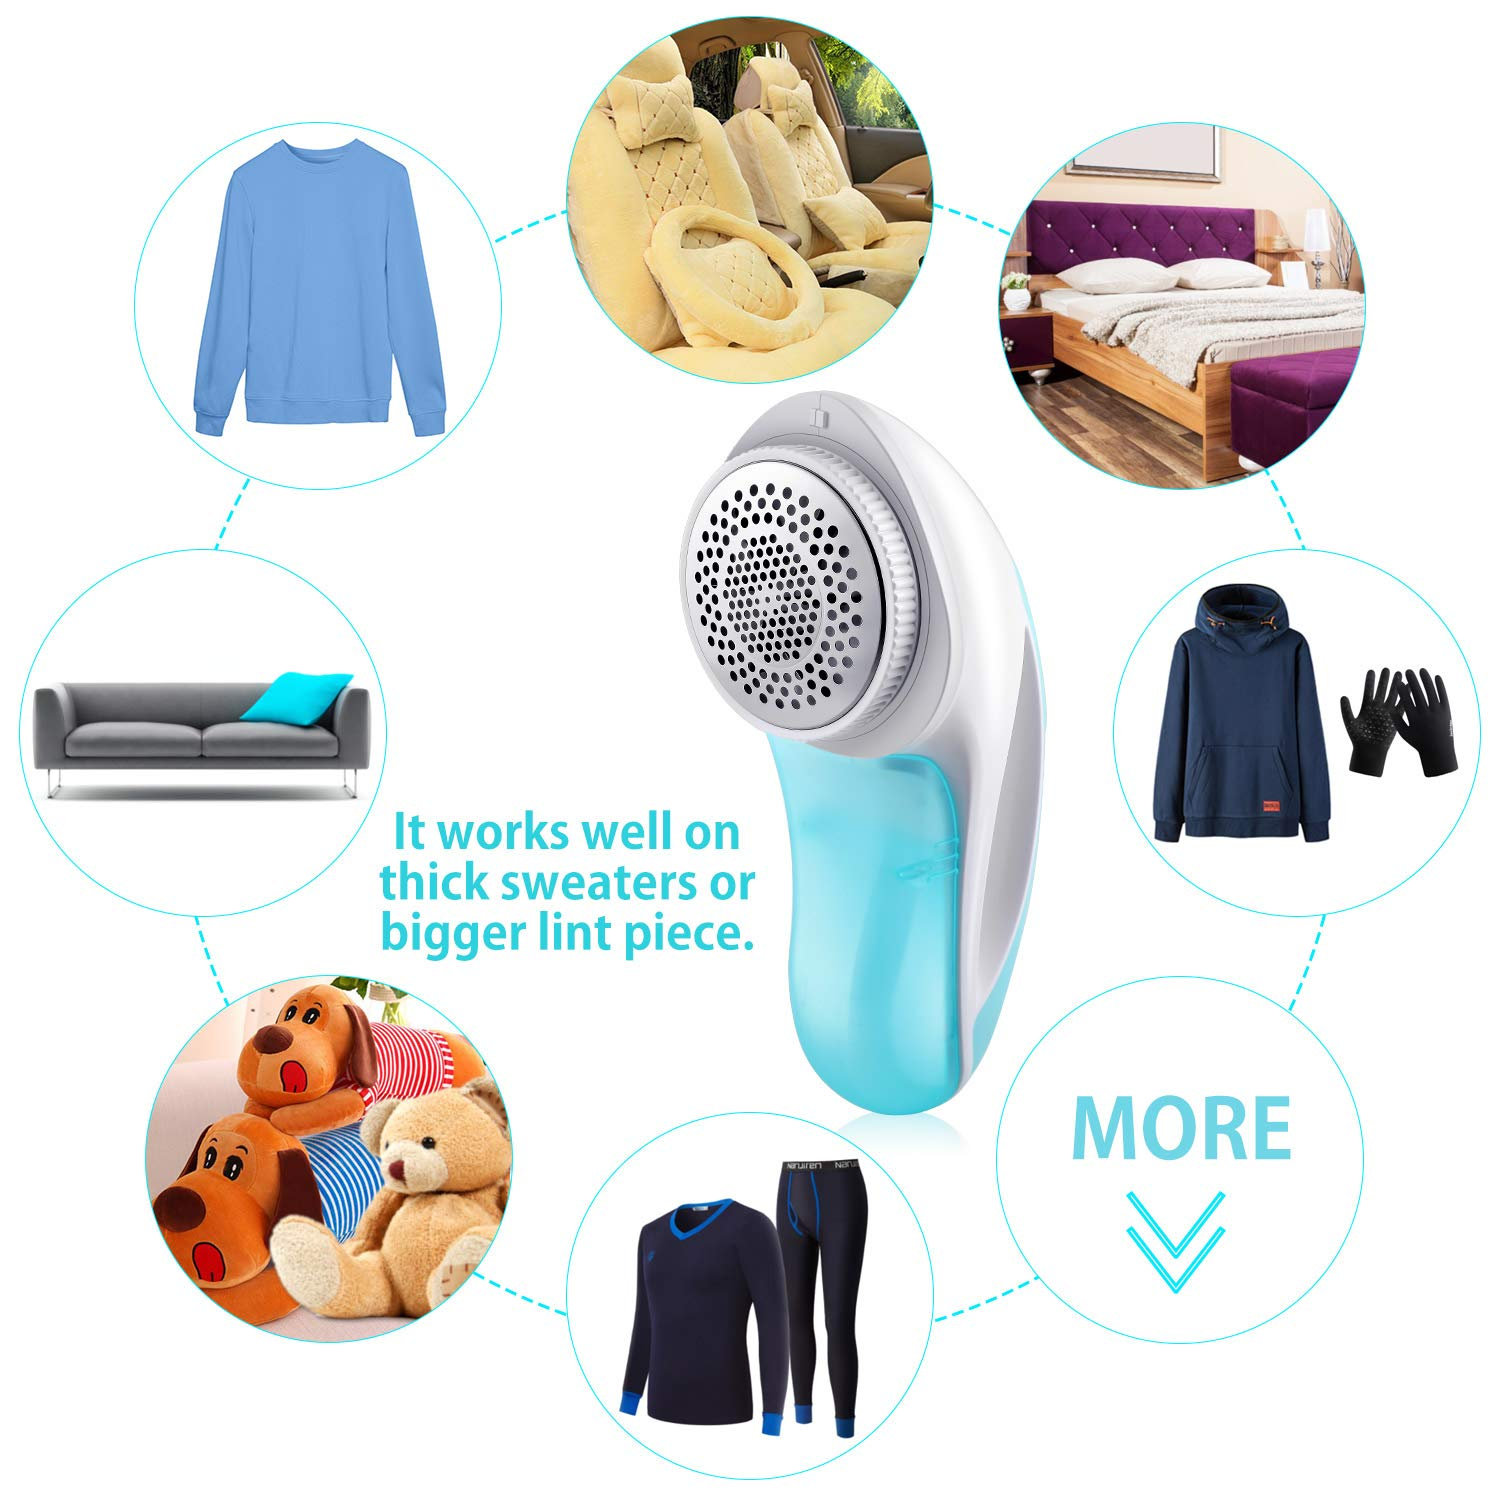 2019 Sweater Shaver Fabric Fuzz Remover, Rechargeable Pill Lint Shaver Defuzzer with USB Charging Cord, Large Shaving Head, Pilling Remover for Clothes Bobbles, Fluff, Balls by YMWVH (Image #7)